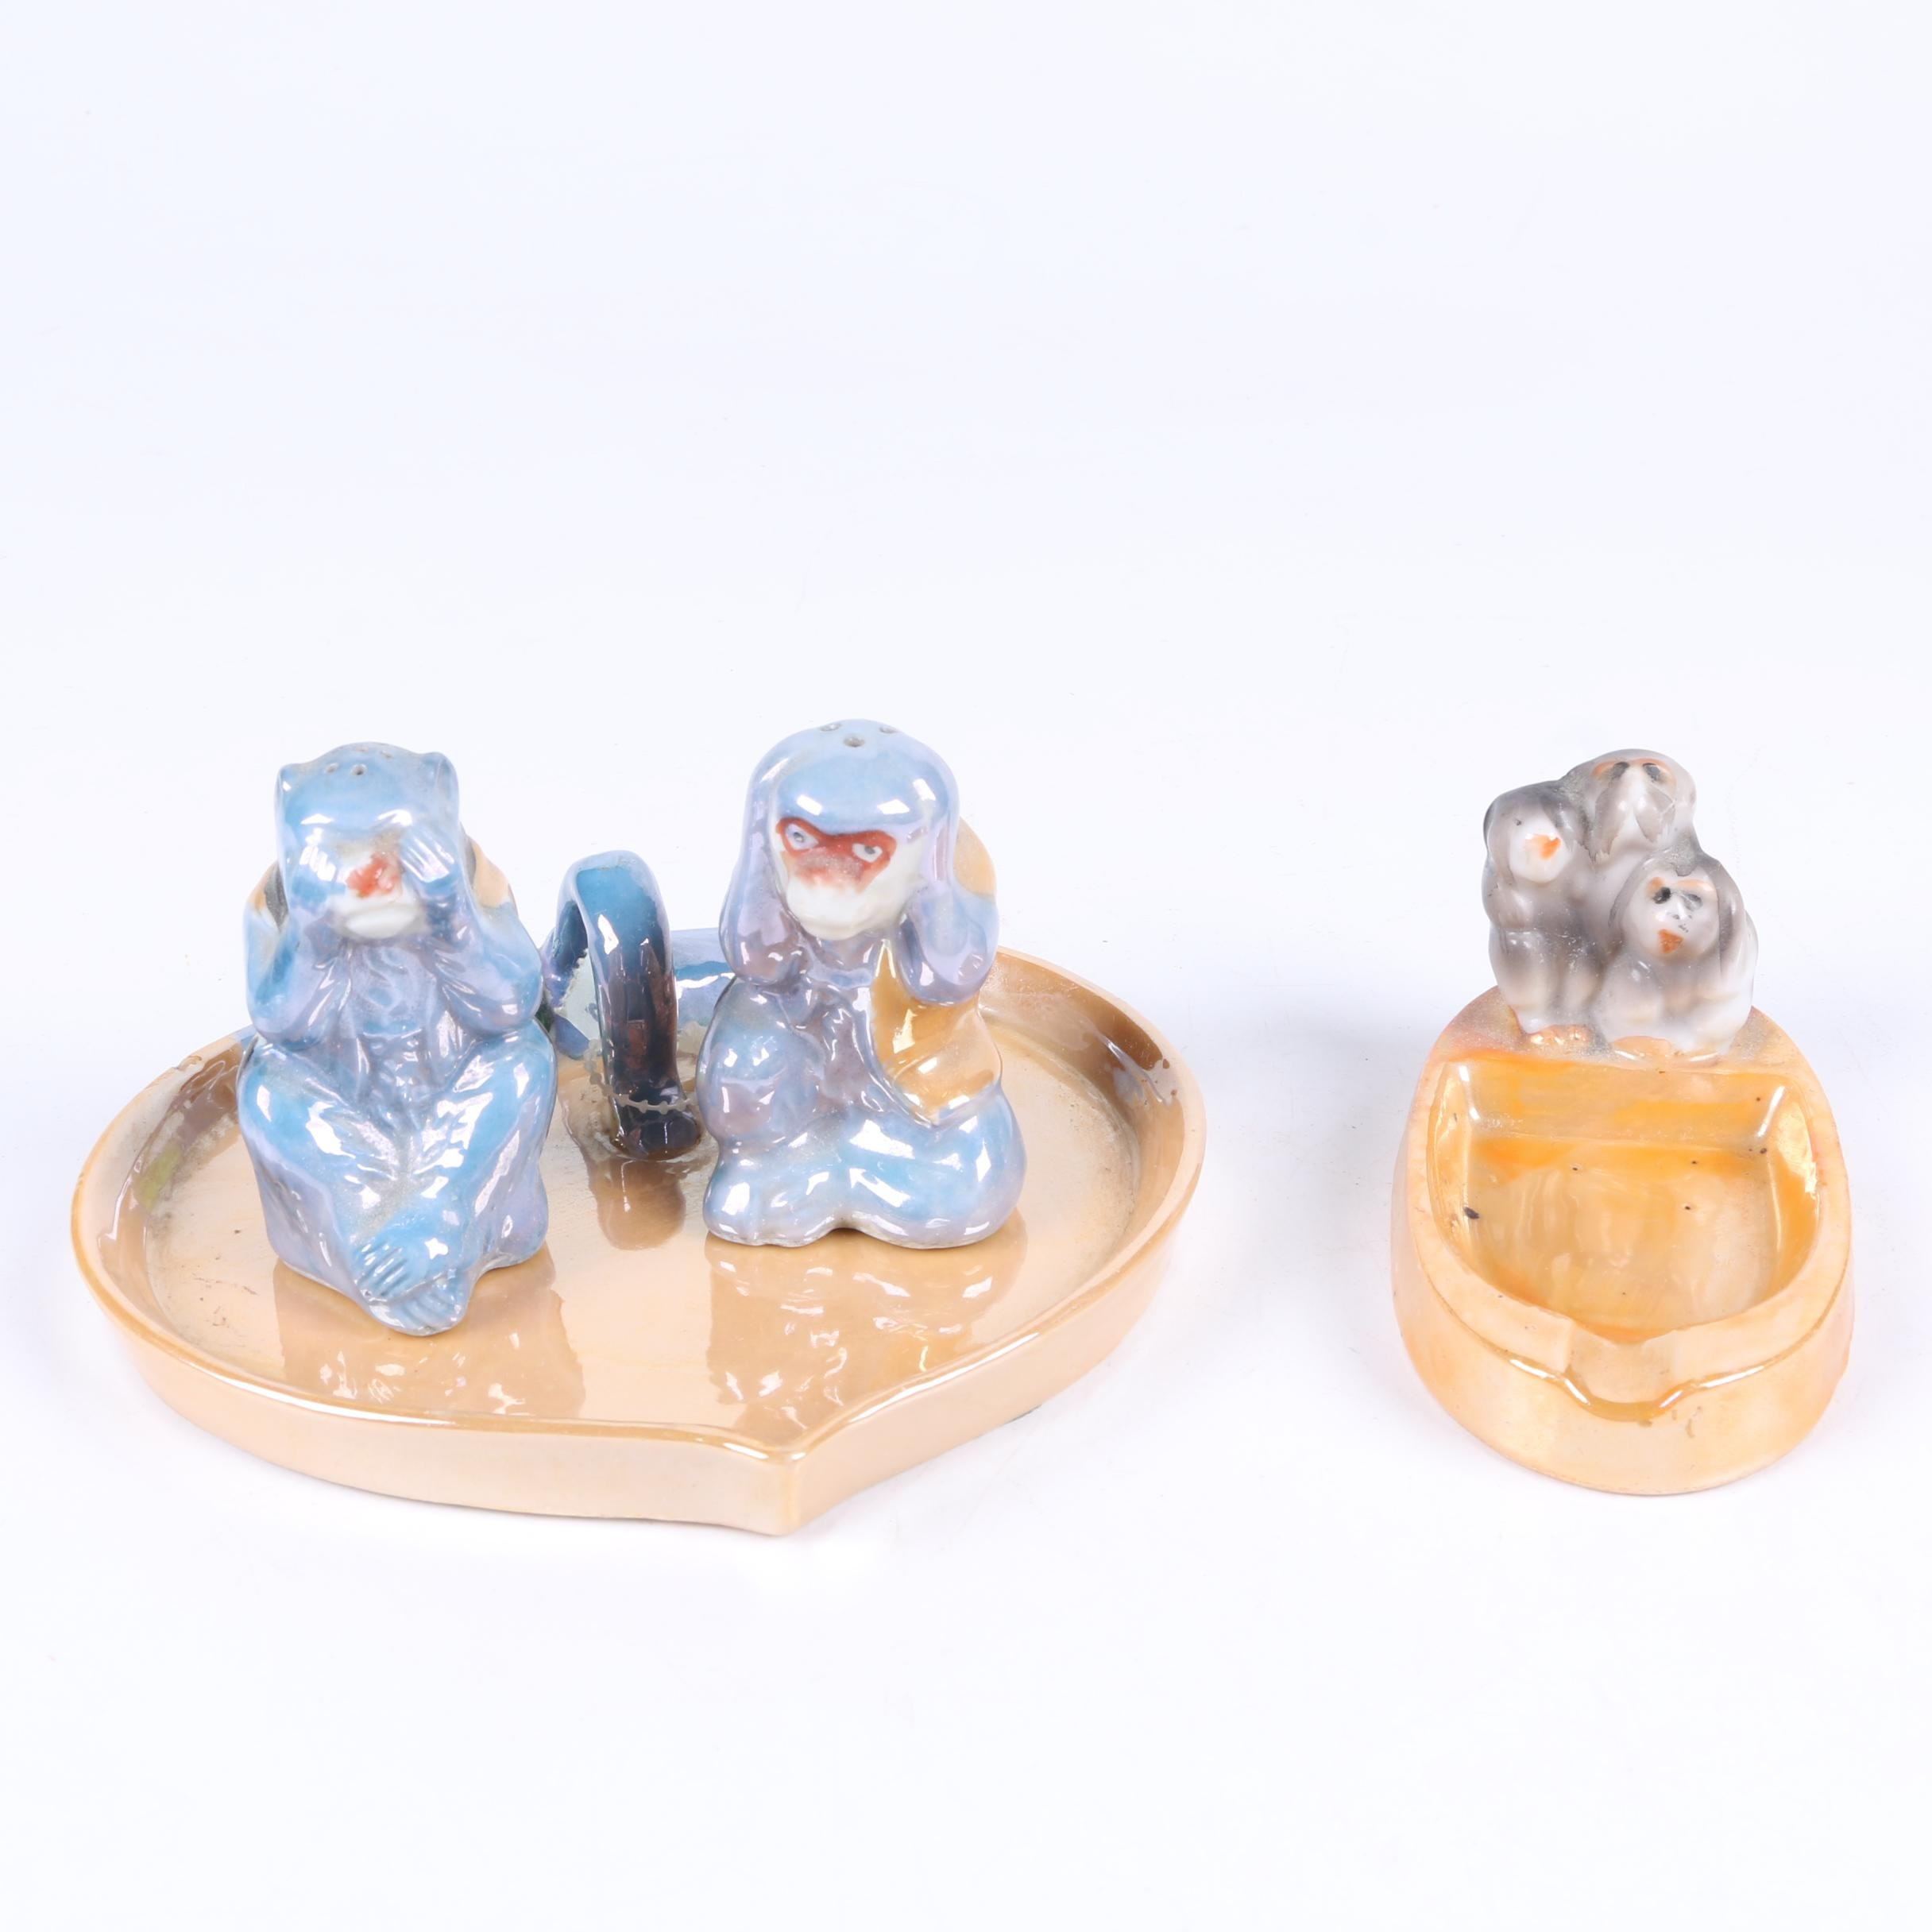 Japanese Monkey Motif Ceramic Casters and Ash Receiver